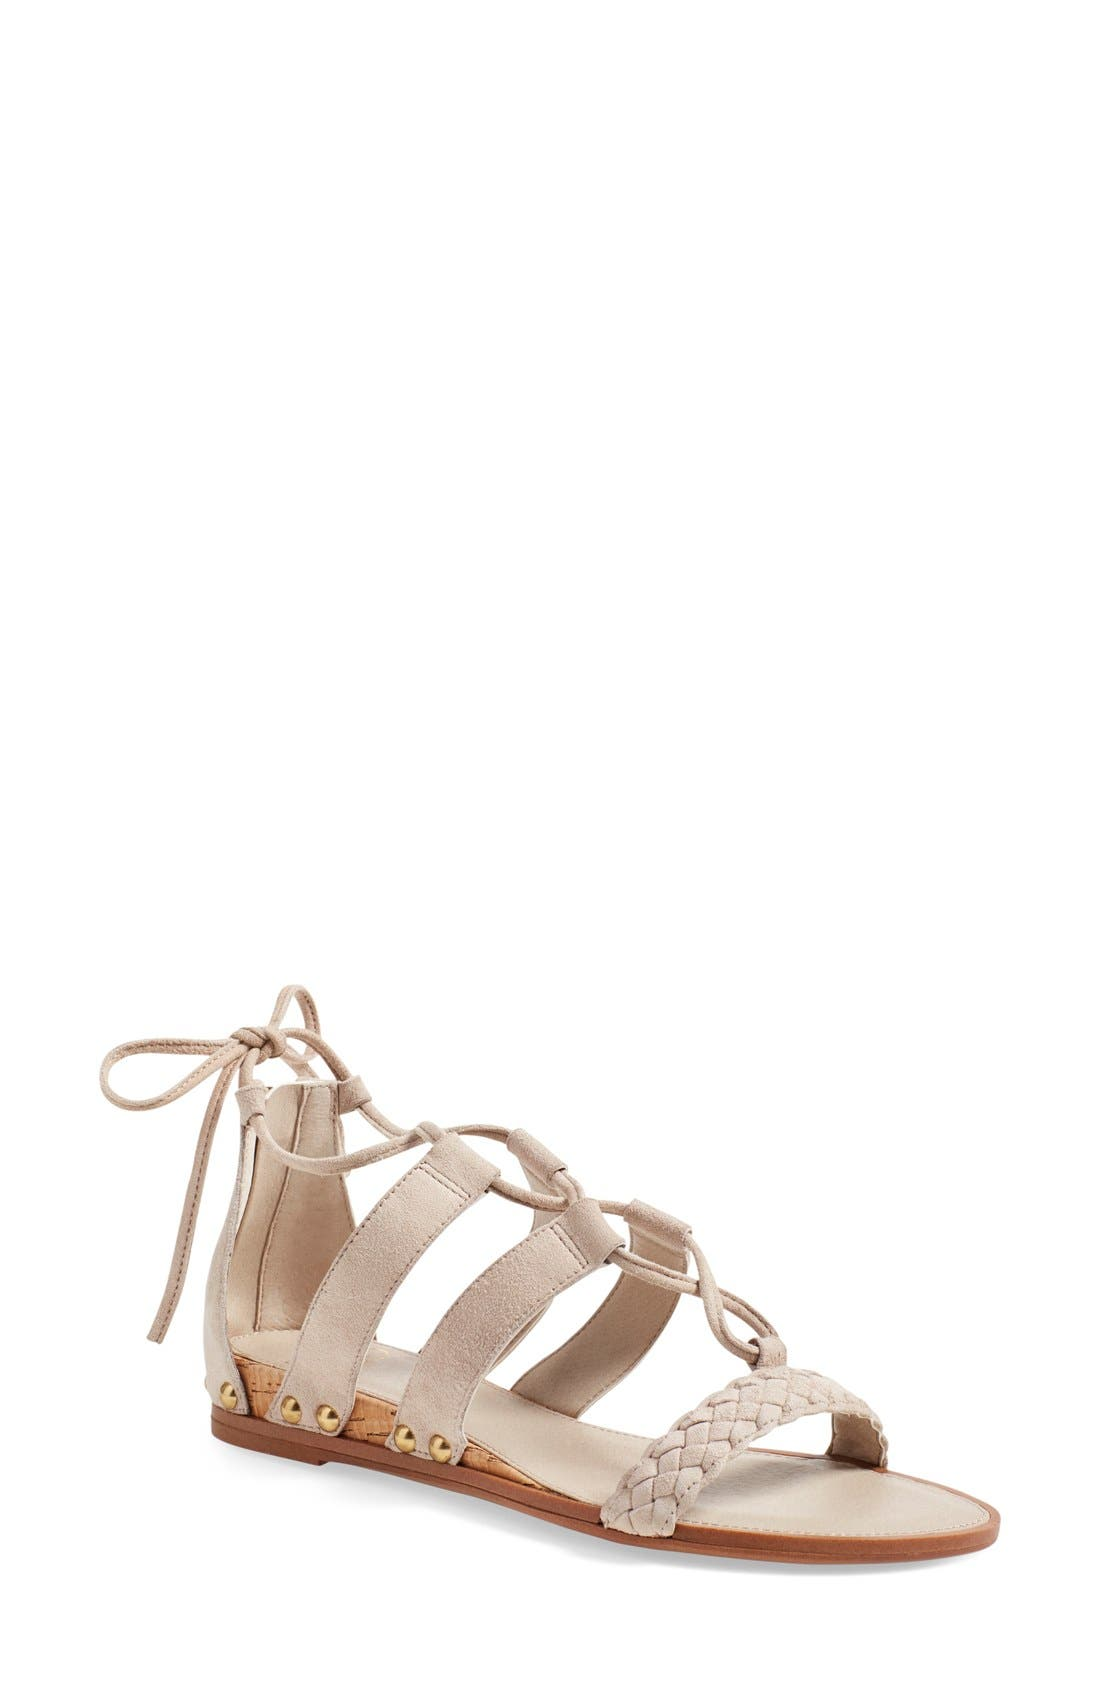 Alternate Image 1 Selected - SARTO by Franco Sarto 'Pierson' Lace-Up Sandal (Women)